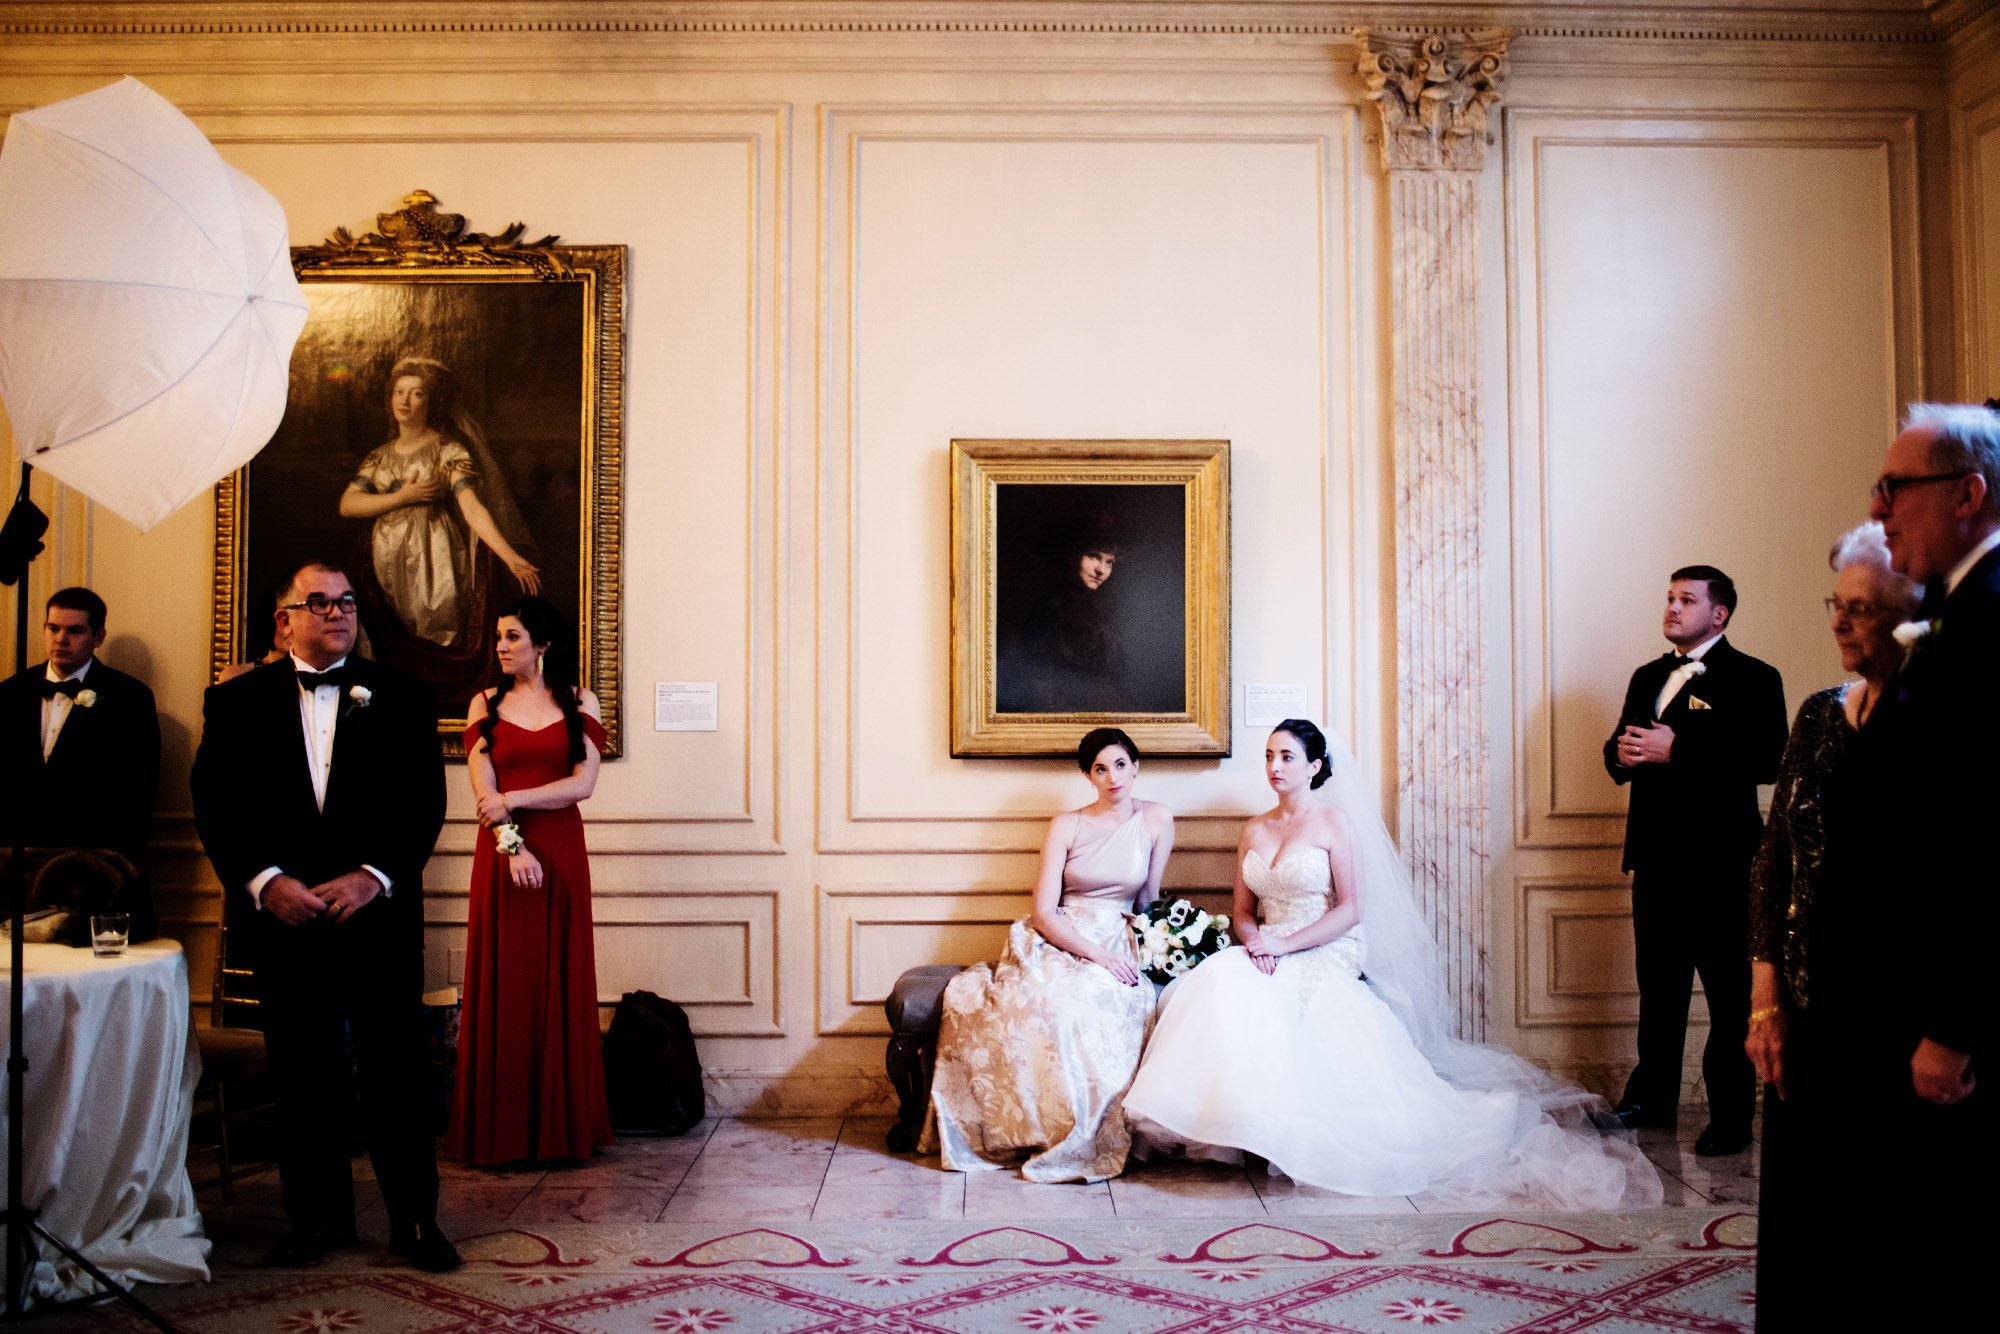 The Bride and Maid of Honor sit during the portrait period of this NMWA wedding.